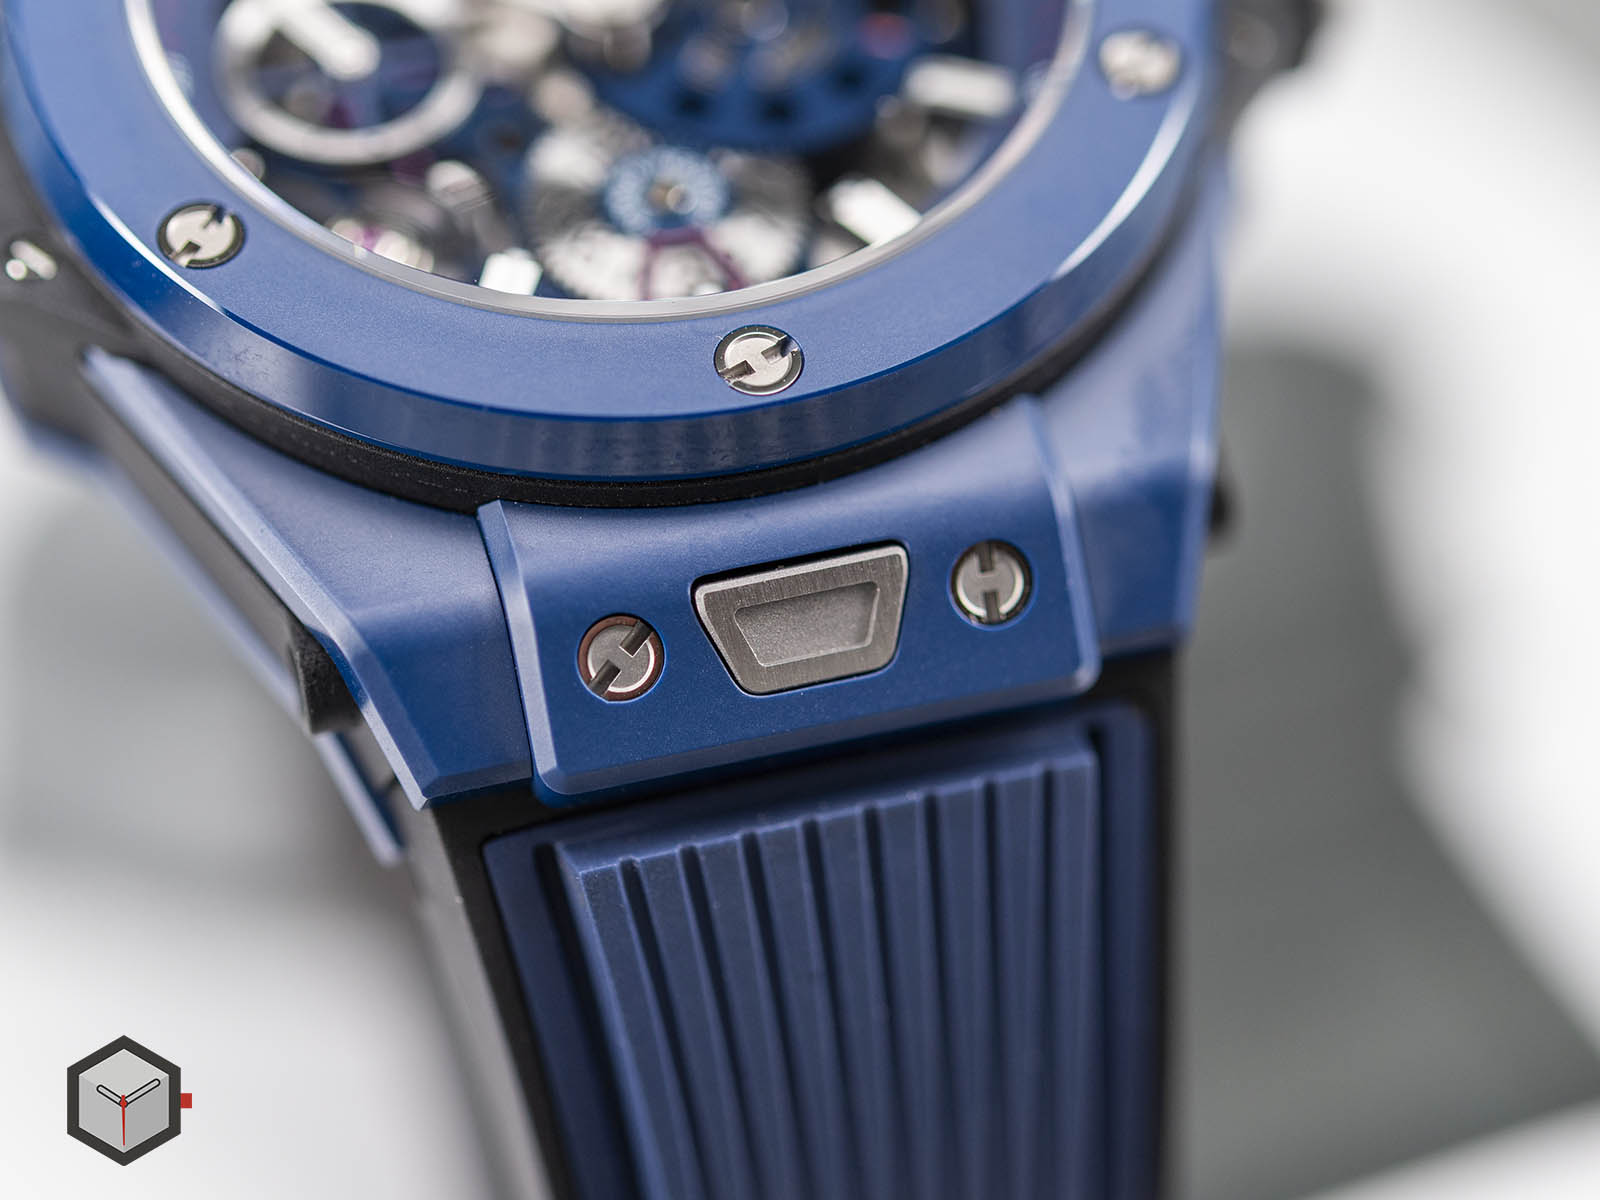 414-ex-5123-rx-hublot-big-bang-meca-10-ceramic-blue-45mm-7.jpg